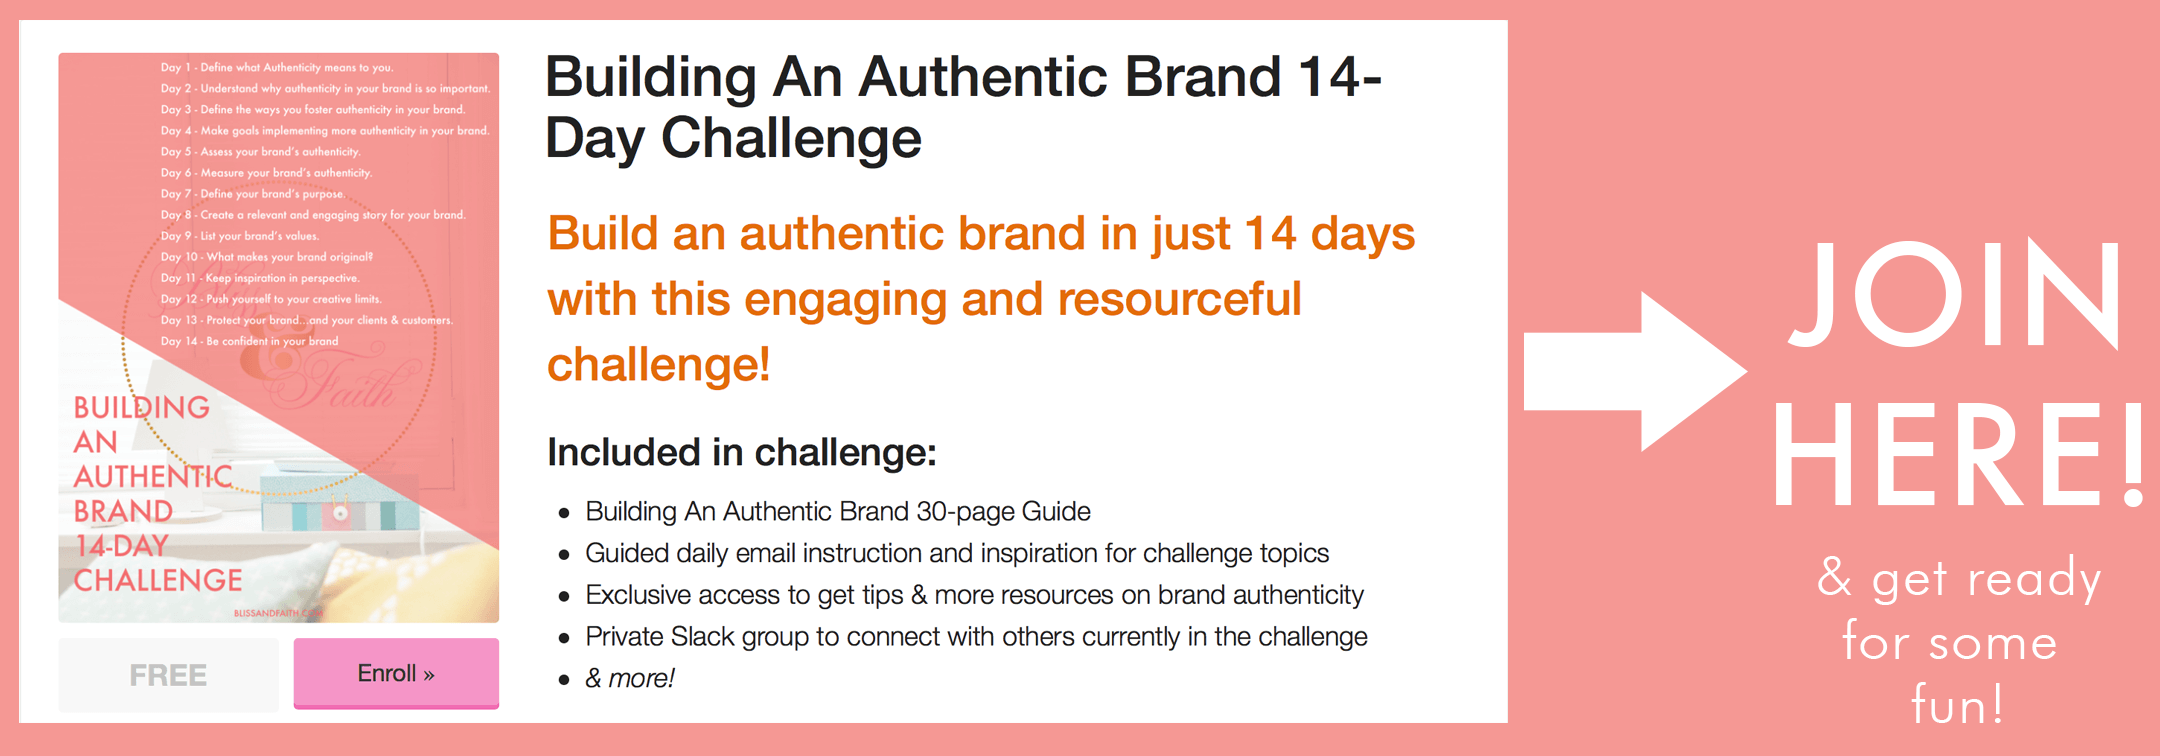 Building An Authentic Brand Challenge | BlissandFaith.com